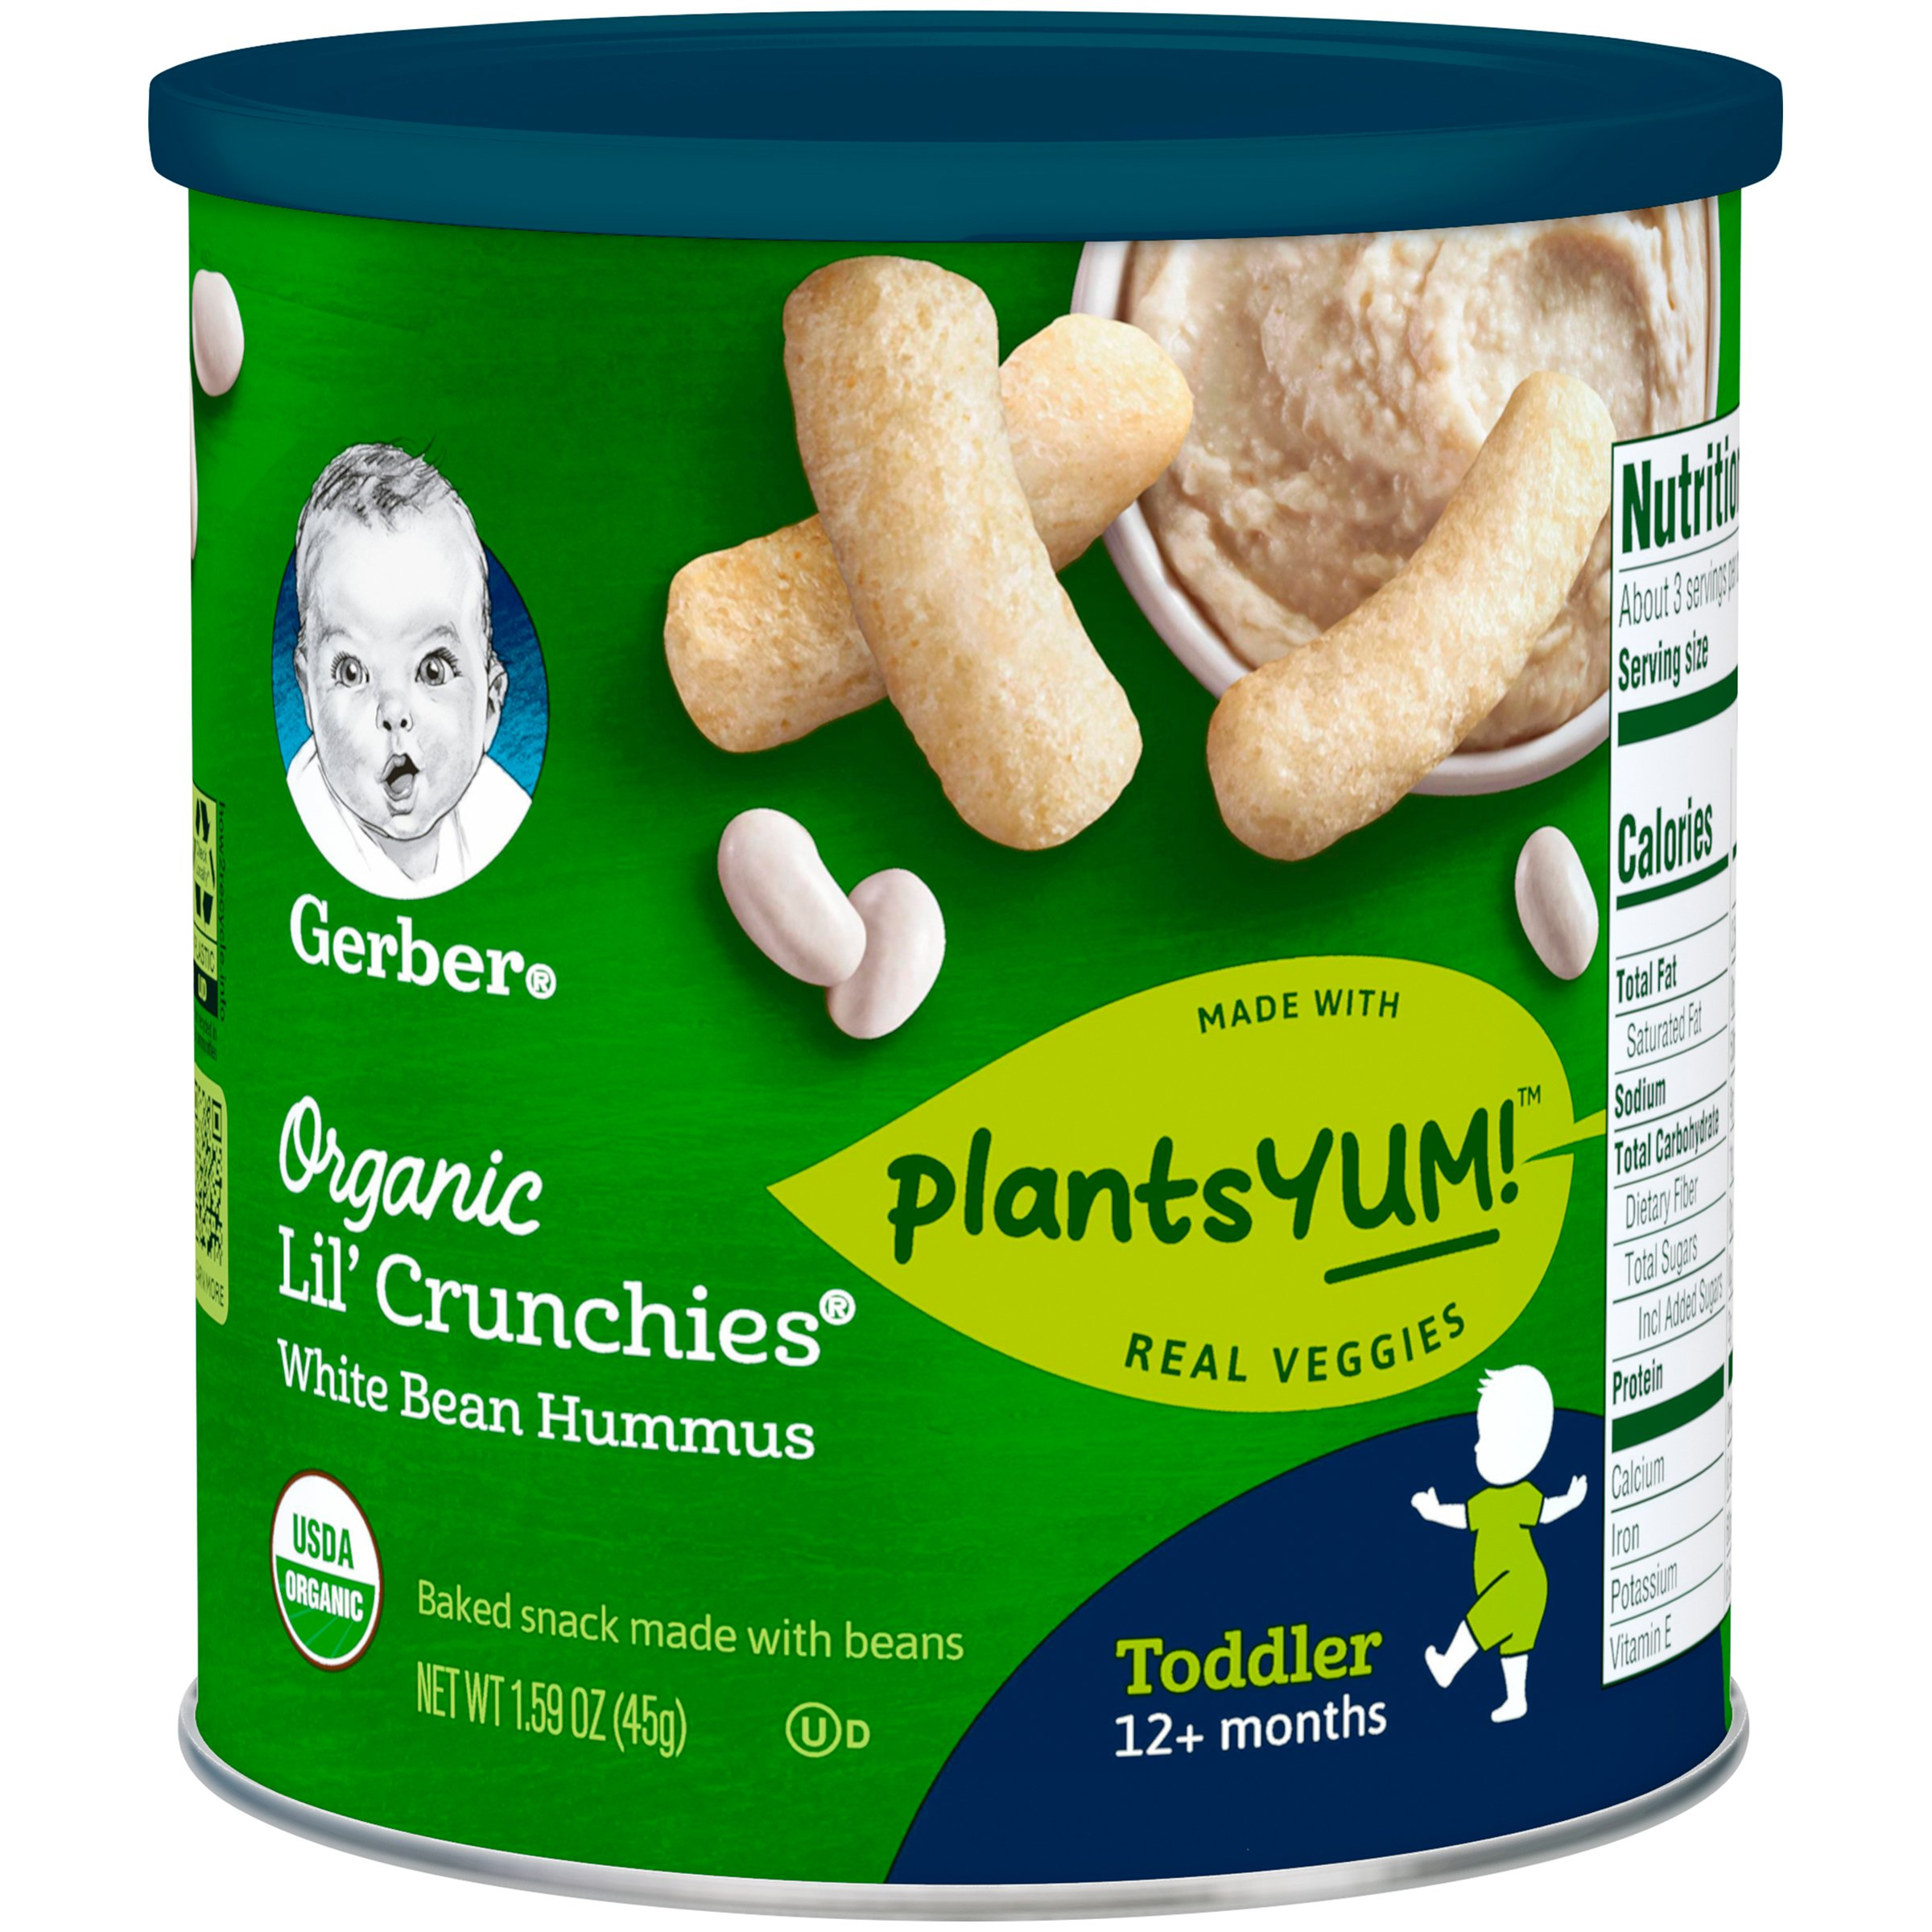 Gerber Organic Lil' Crunchies Baked Corn Snack White Bean Hummus (Pack of 6) by GERBER